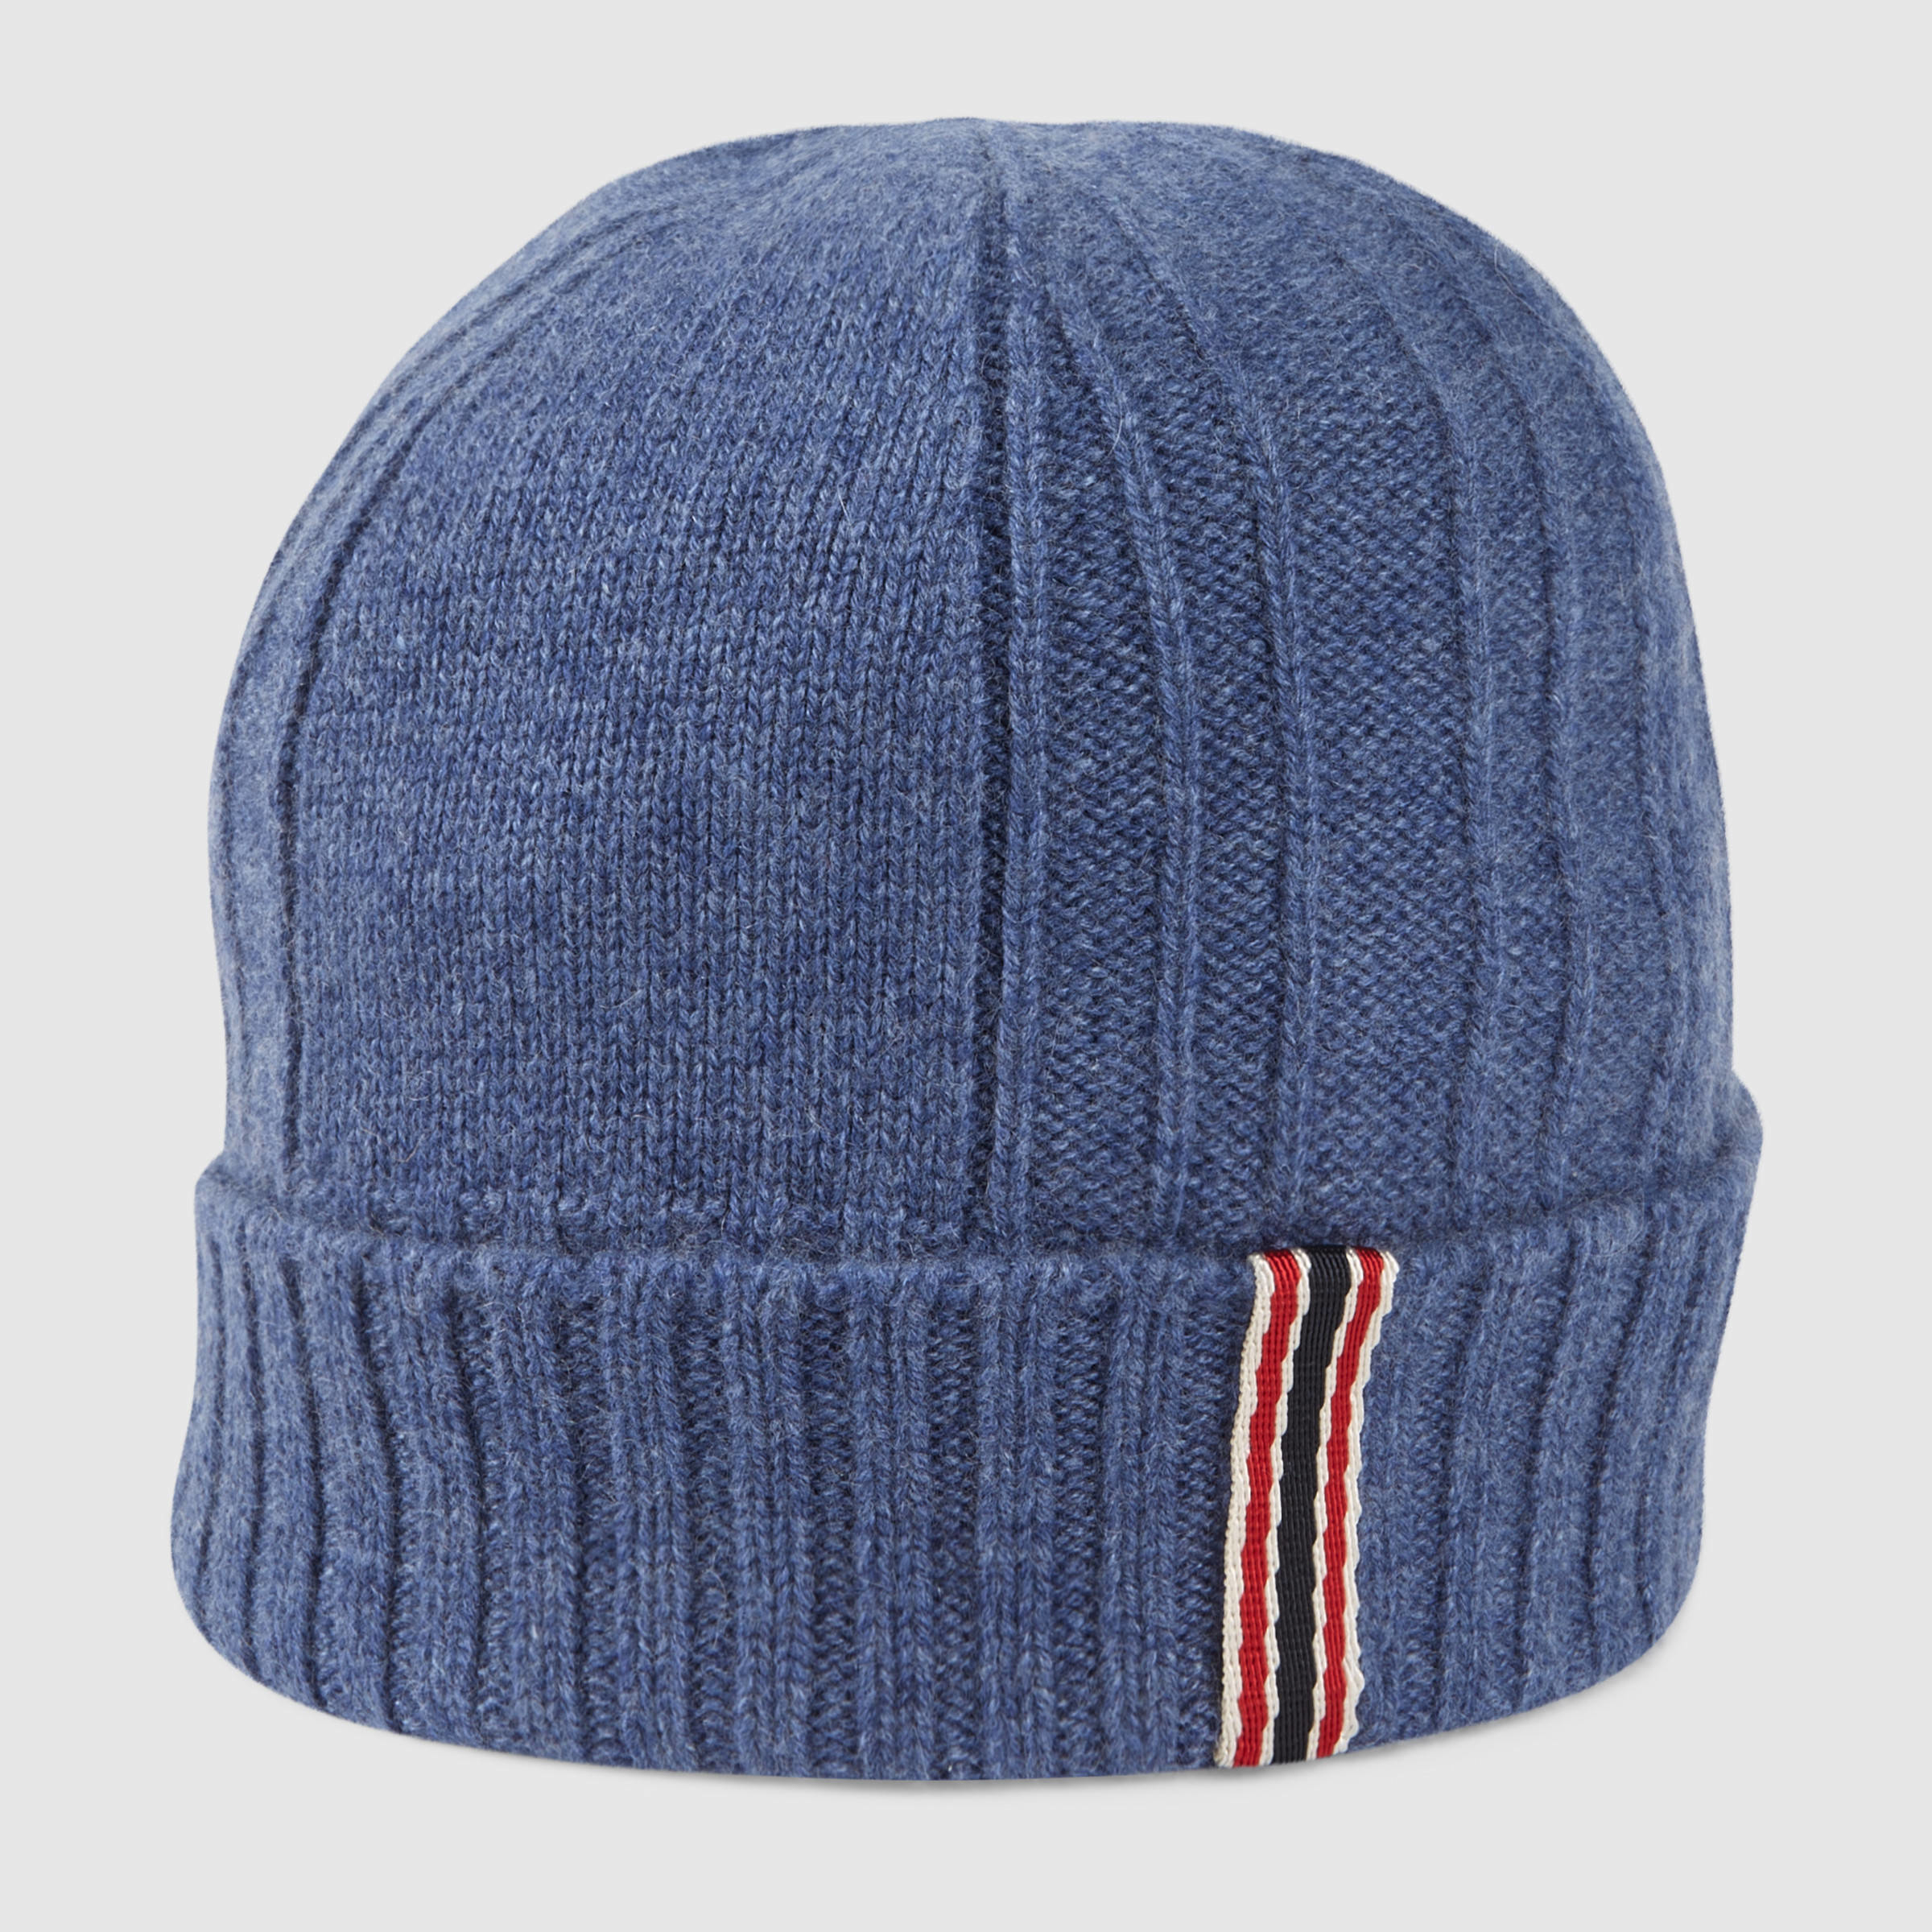 Gucci Hats For Men: Gucci Sapphire Cashmere Hat In Blue For Men